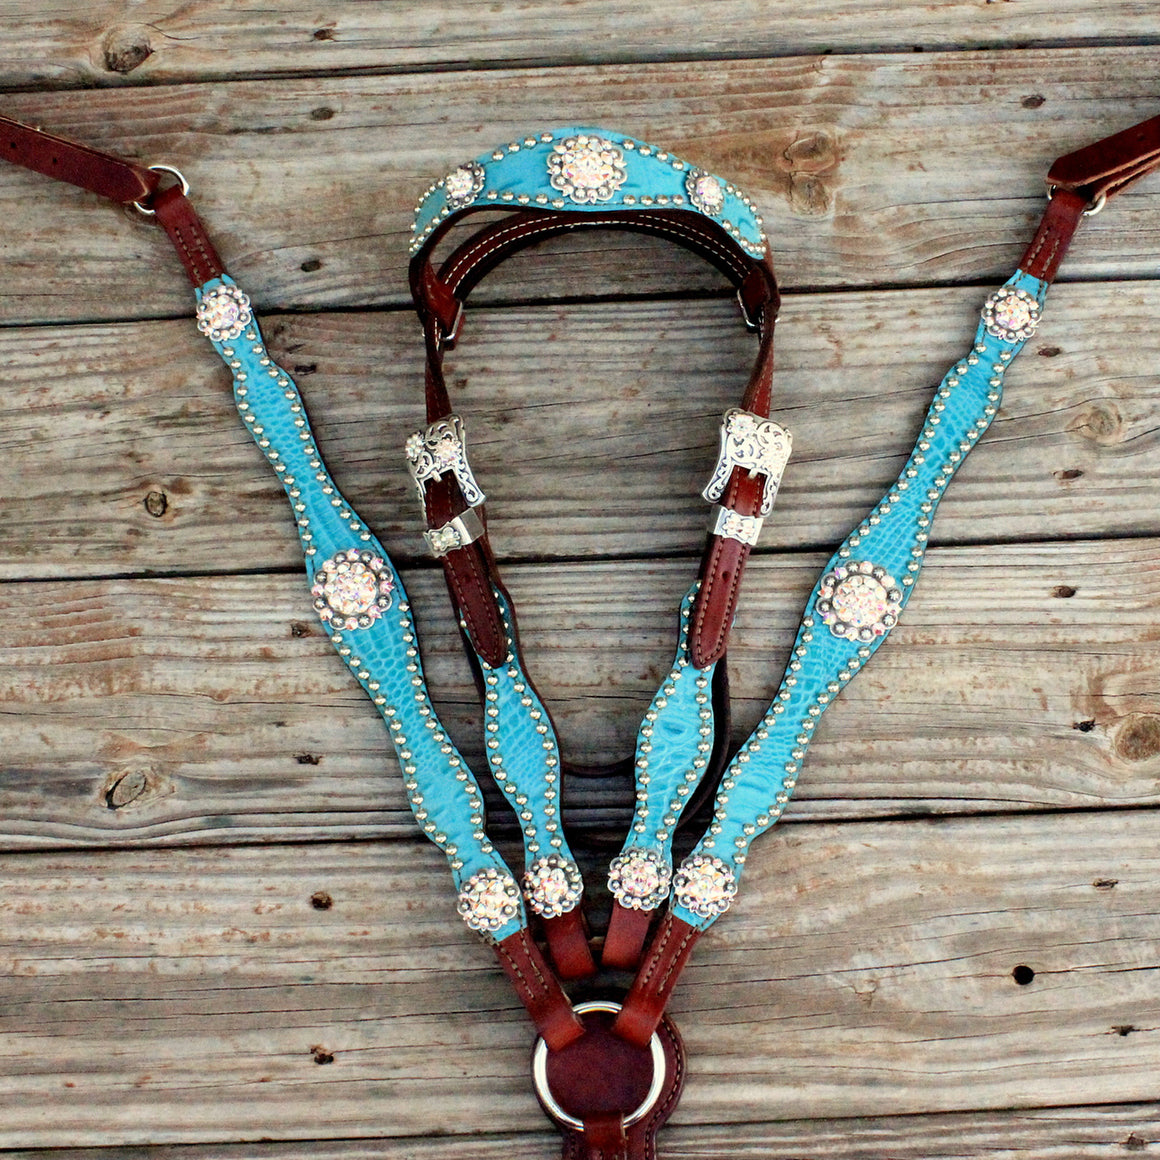 Teal Gator/Chestnut Leather Browband Tack Set w/AB Crystal Rhinestone Conchos